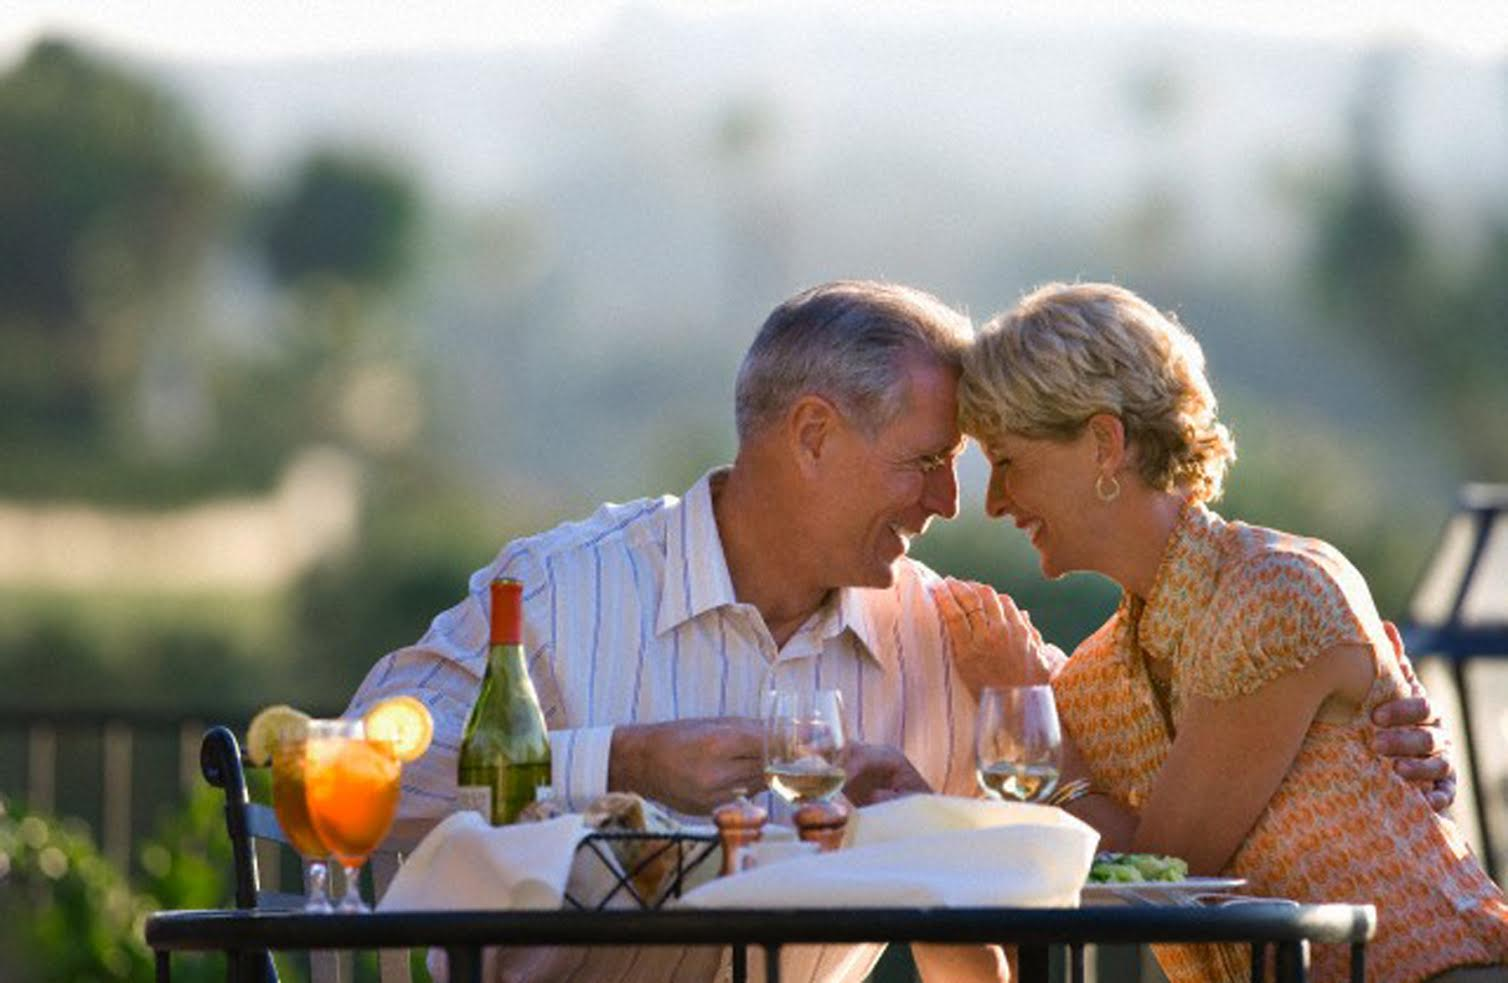 Mature couple dining at outdoor restaurant table, leaning affectionately forehead to forehead, smiling, profile --- Image by © Juice Images/Corbis